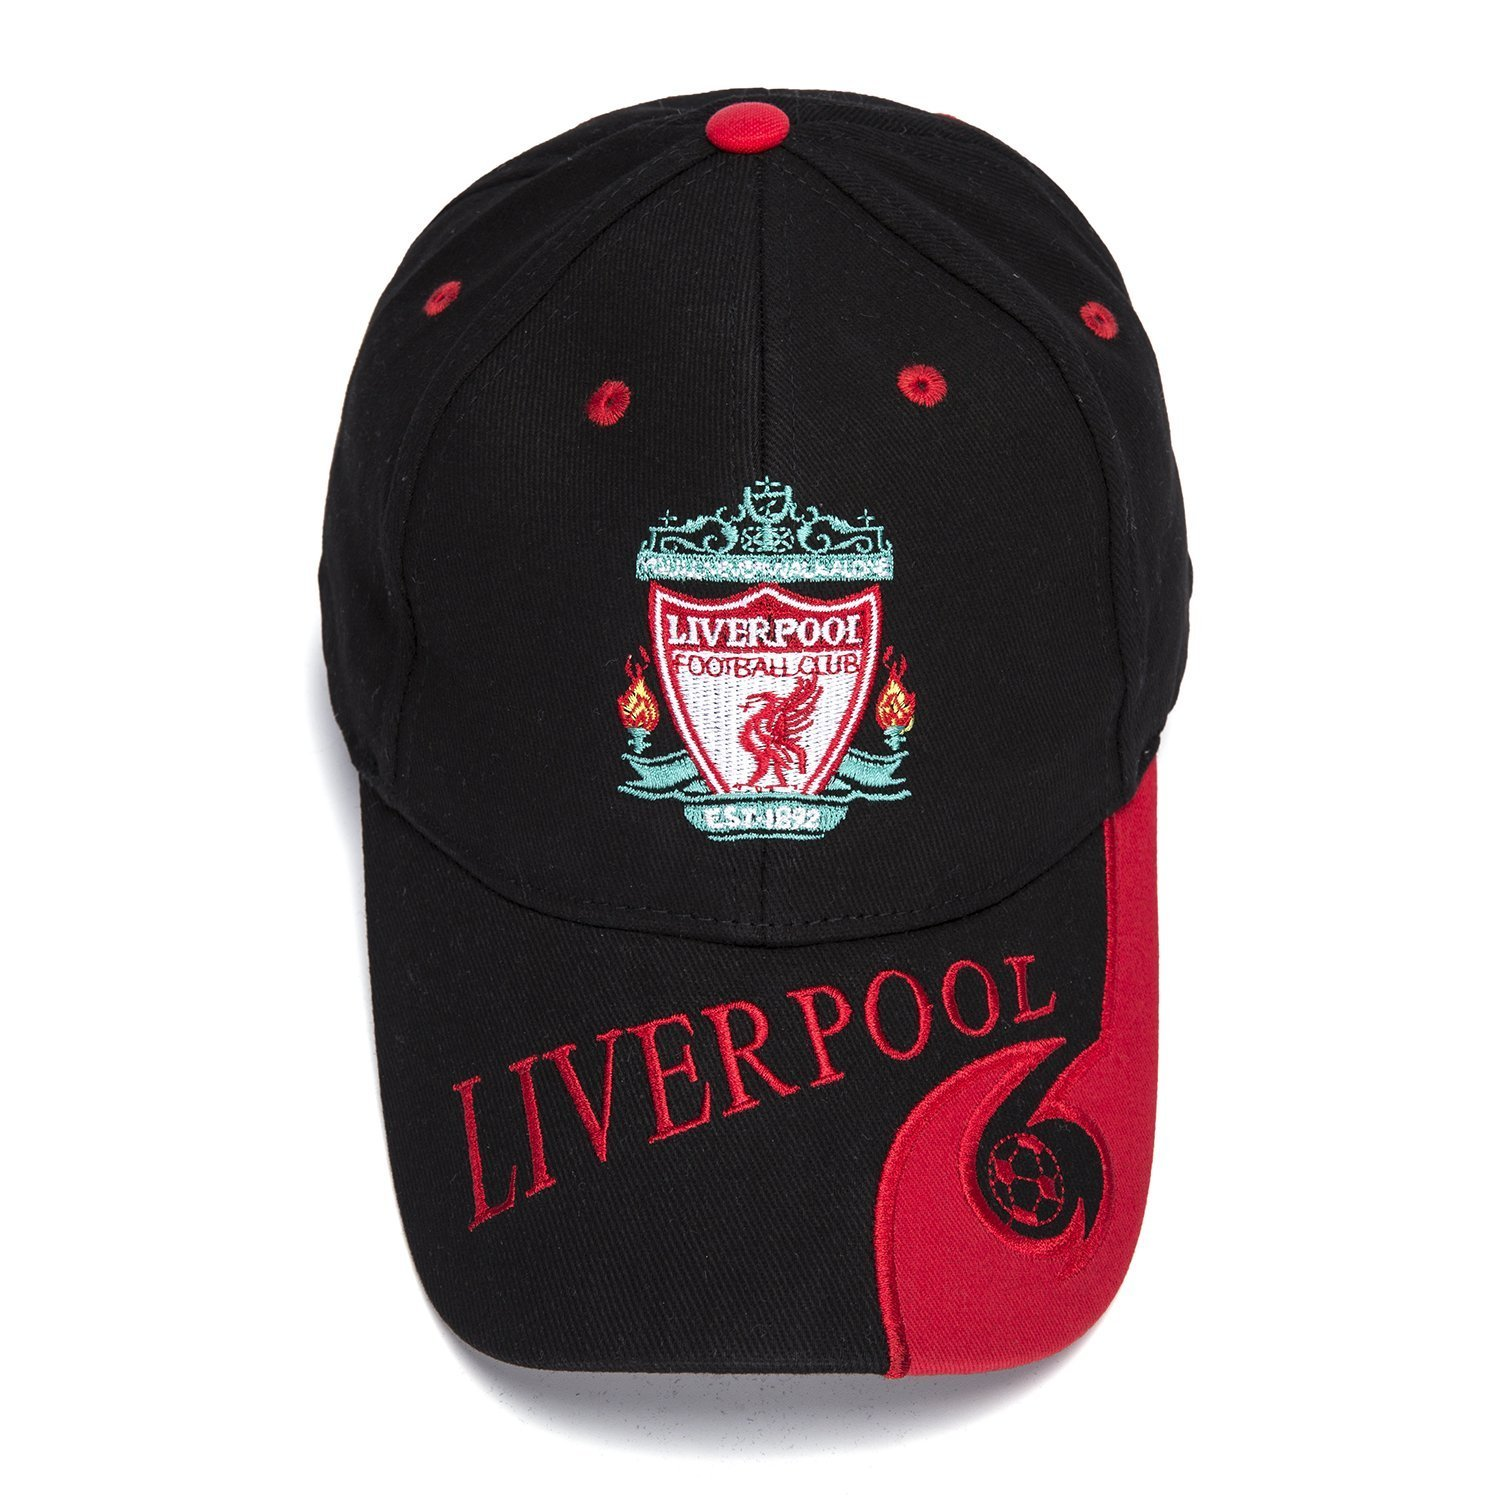 Amazon.com   FOOT-ACC Liverpool Team Cap Soccer Cap Hat New Season -  Embroidered Authentic Caps Black Baseball Cap   Sports   Outdoors b39af9308b8